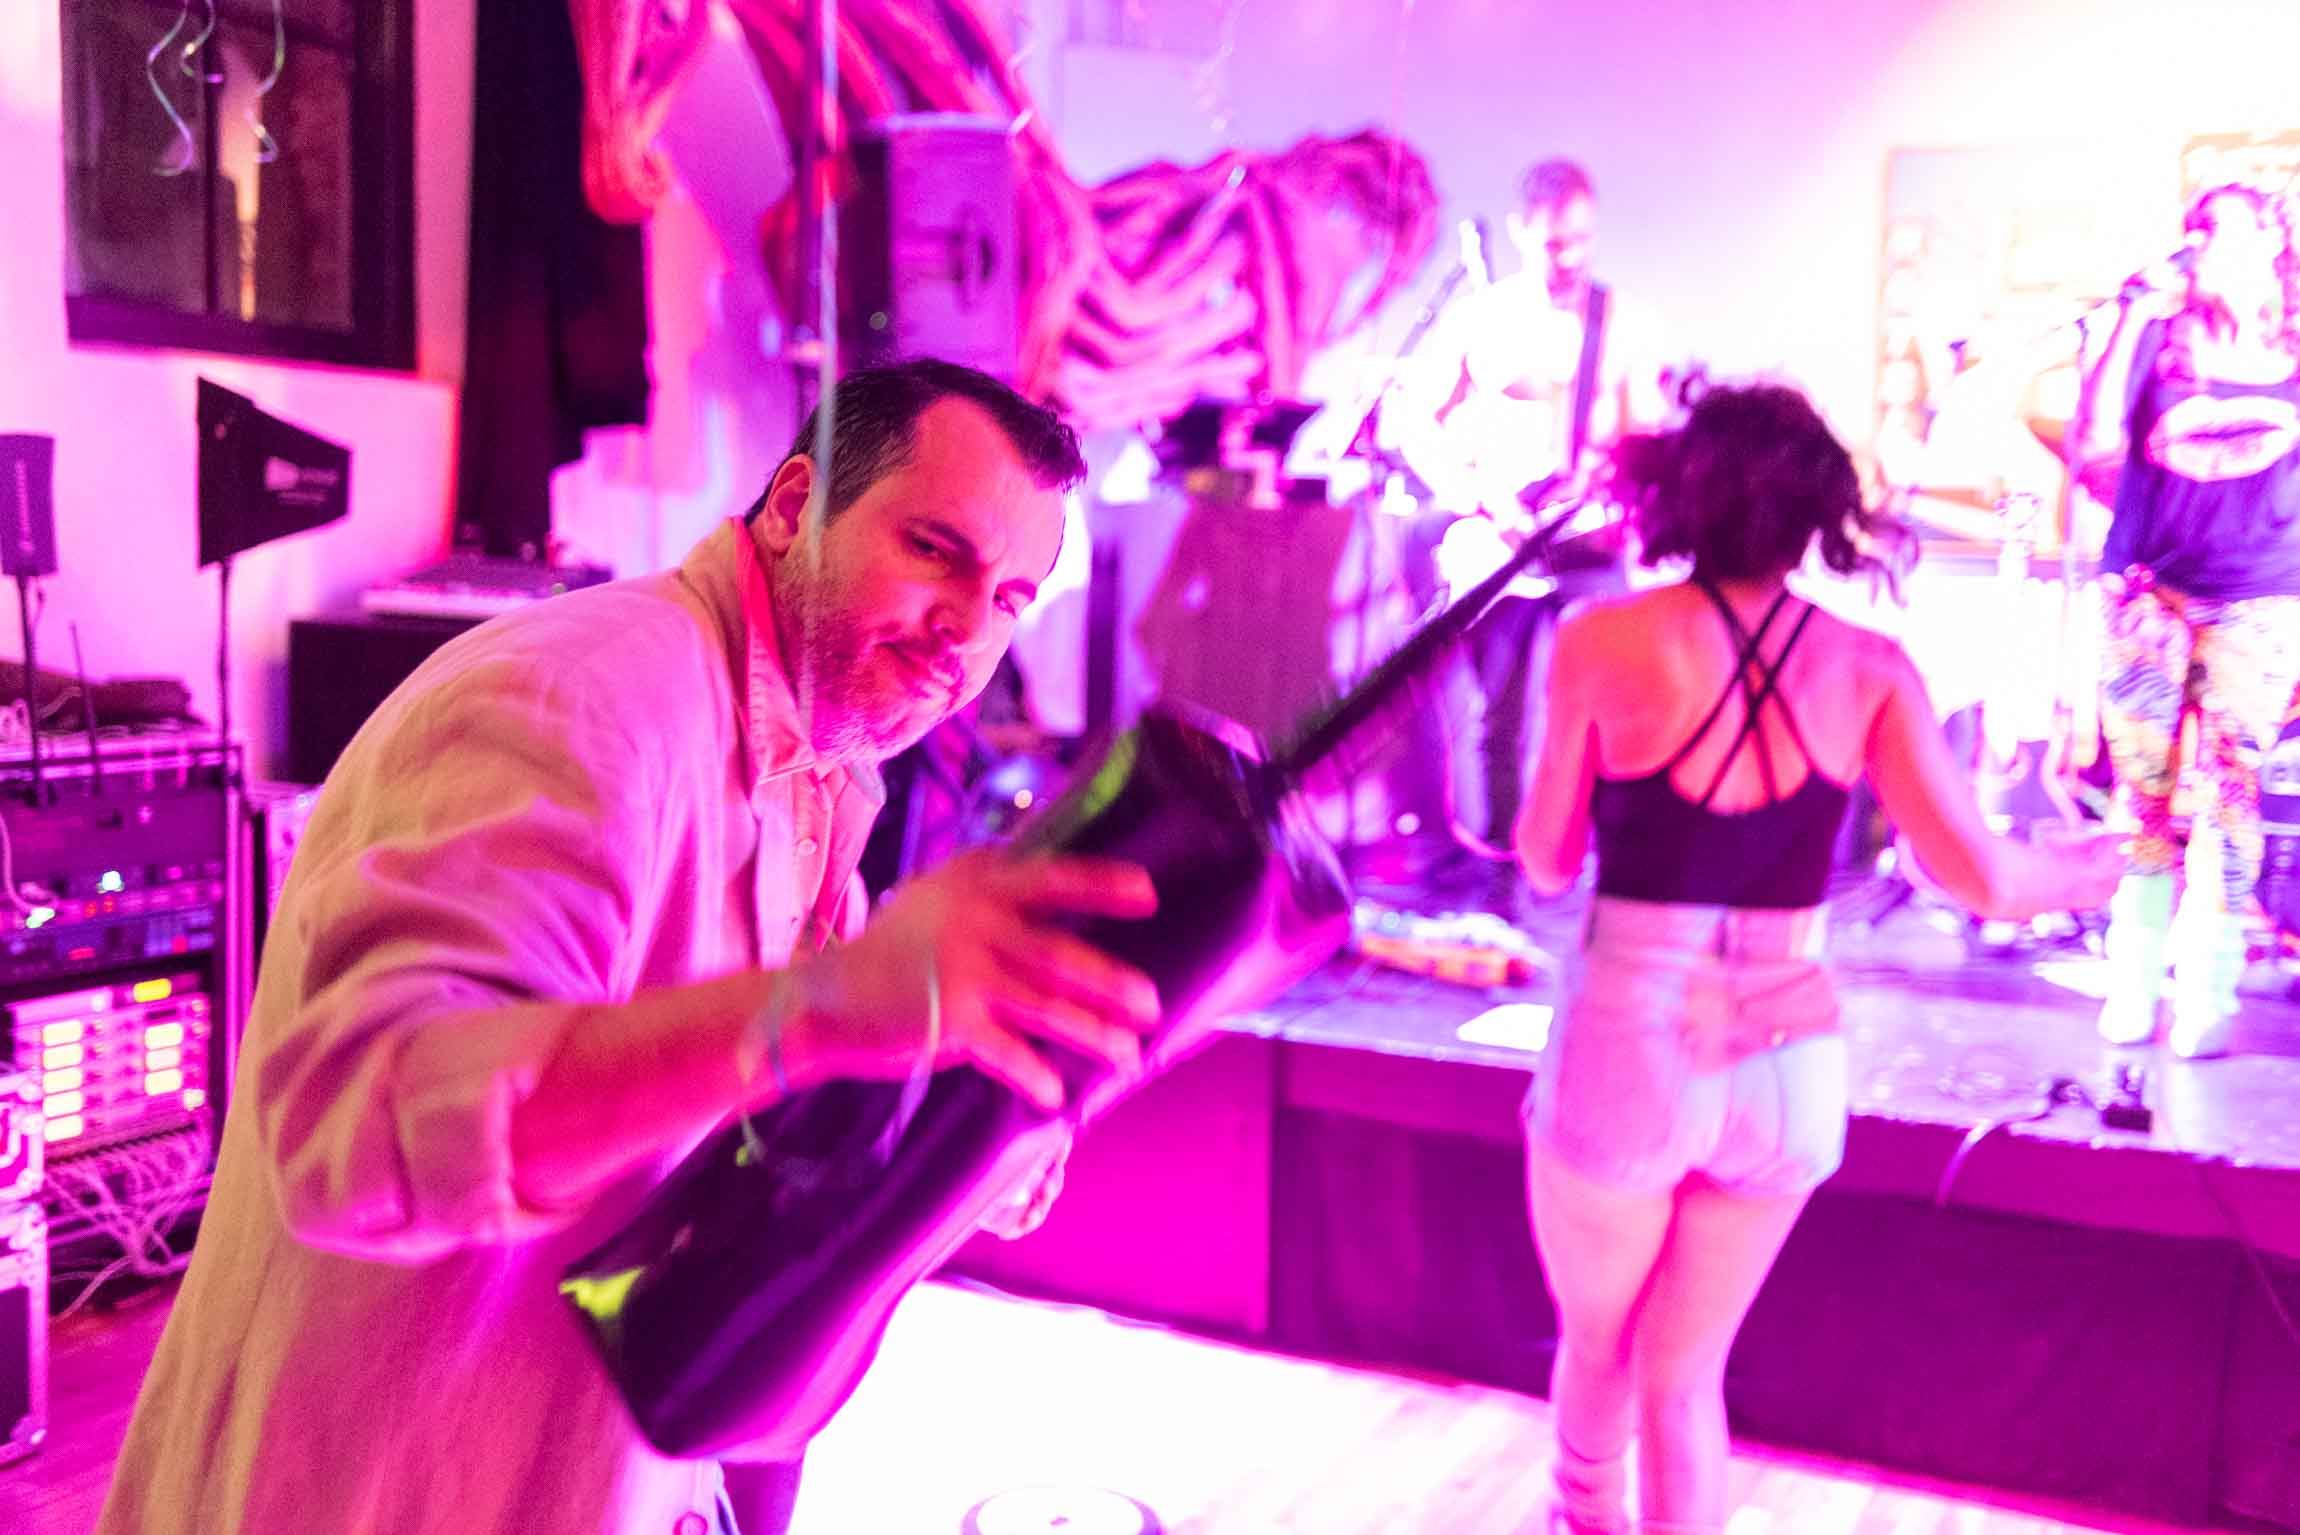 049_sanfrancisco_event_photographer_party.jpg